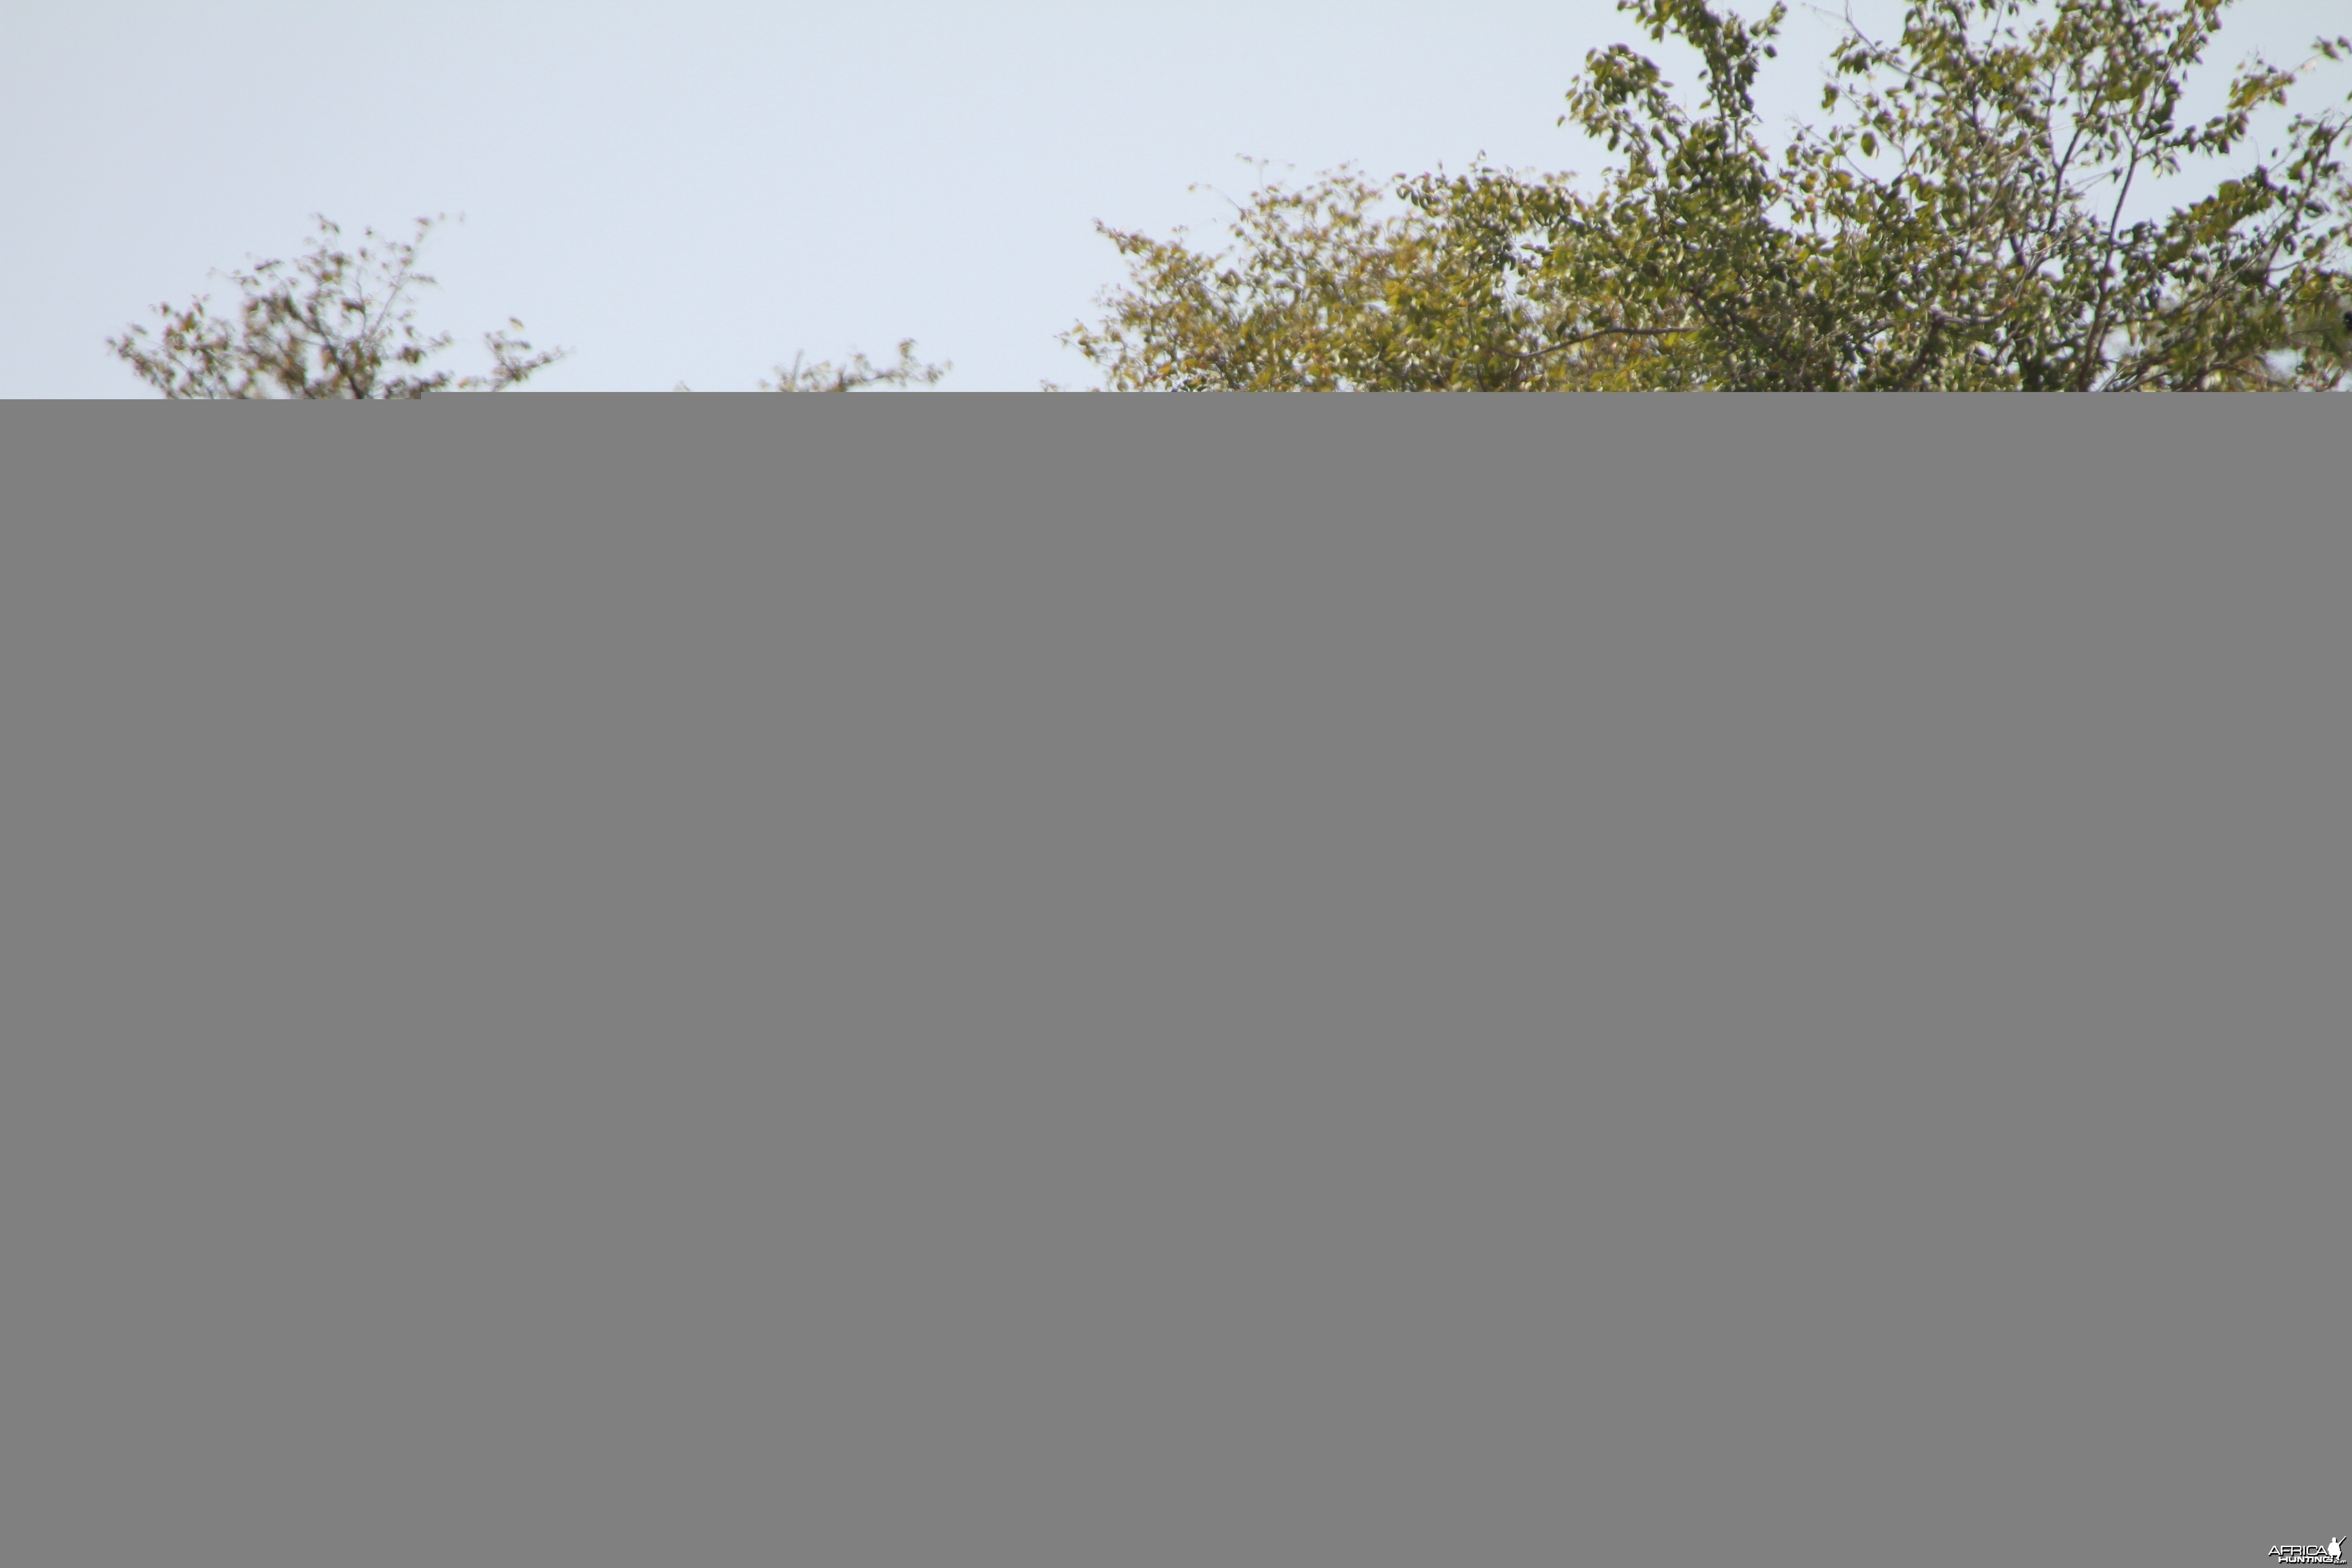 Greater Kudu at Etosha National Park